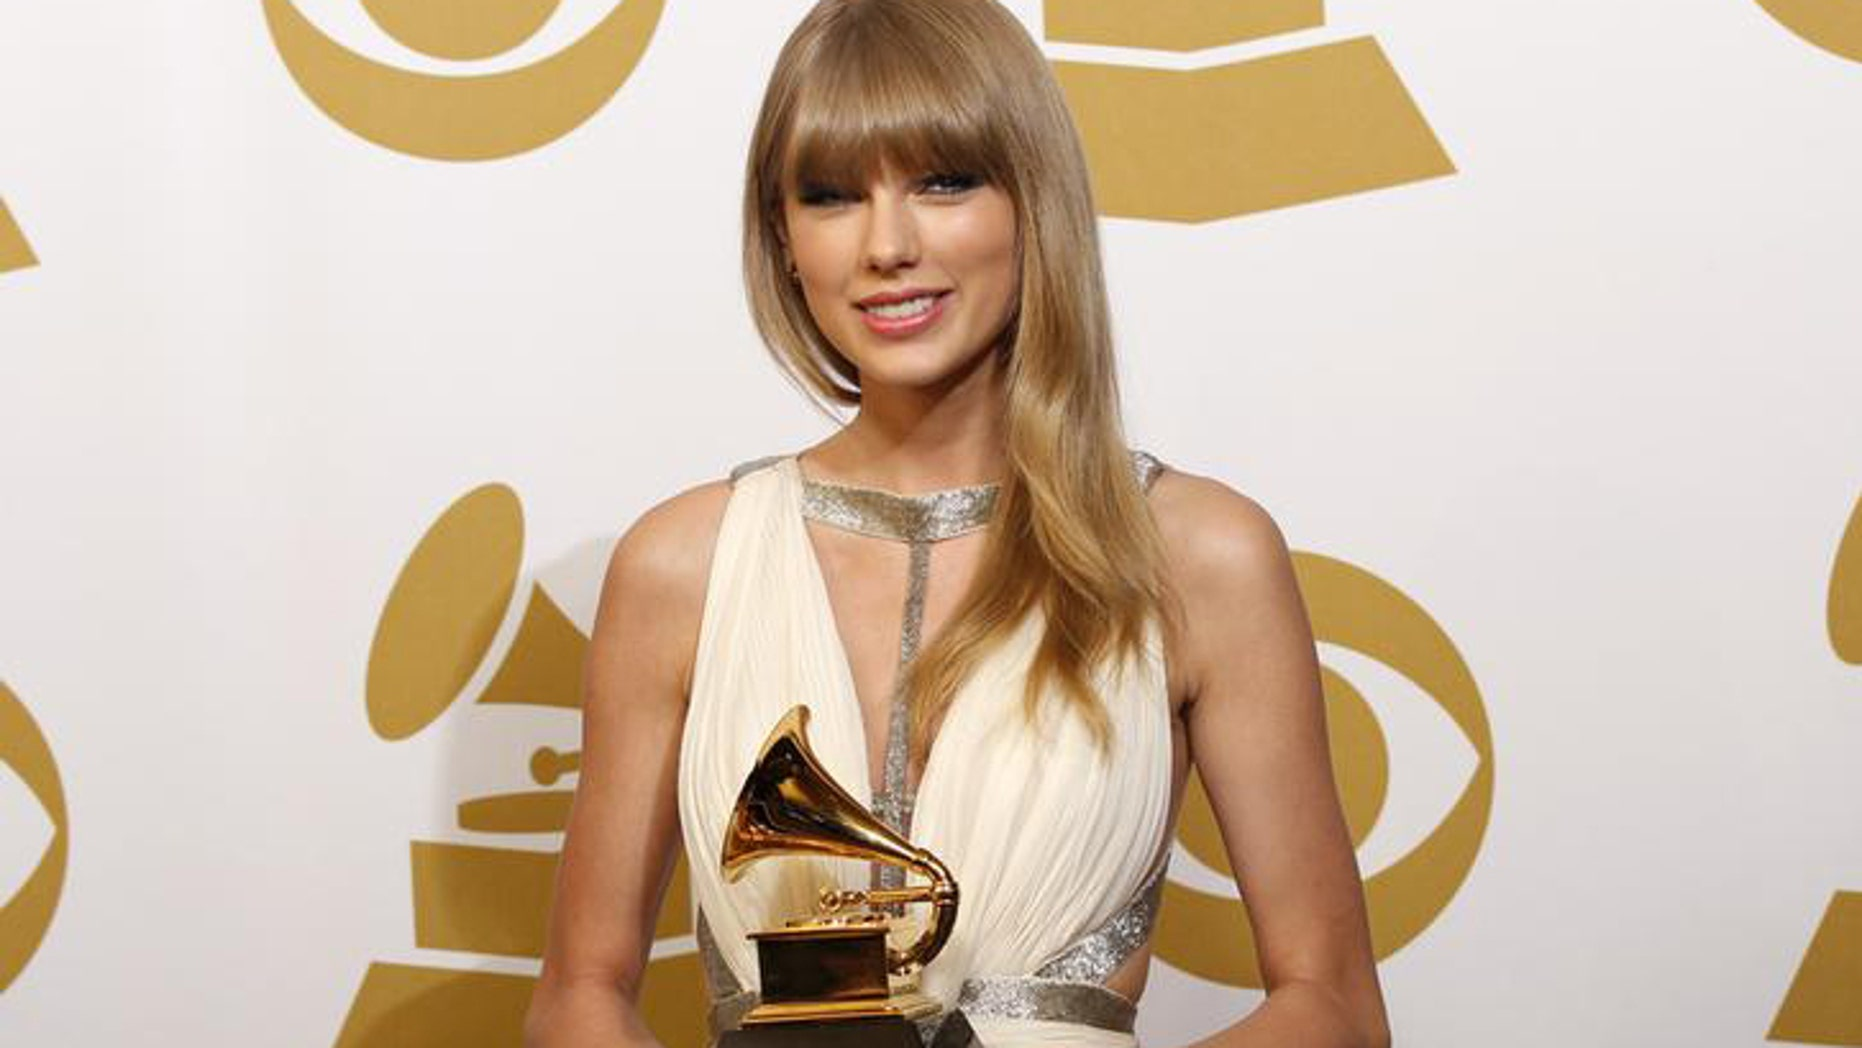 """Taylor Swift holds the award for Best Song Written For Visual Media for """"Safe & Sound"""" backstage at the 55th annual Grammy Awards in Los Angeles, California February 10, 2013.  REUTERS/Mario Anzuoni (UNITED STATES  - Tags: ENTERTAINMENT)  (GRAMMYS-BACKSTAGE)"""